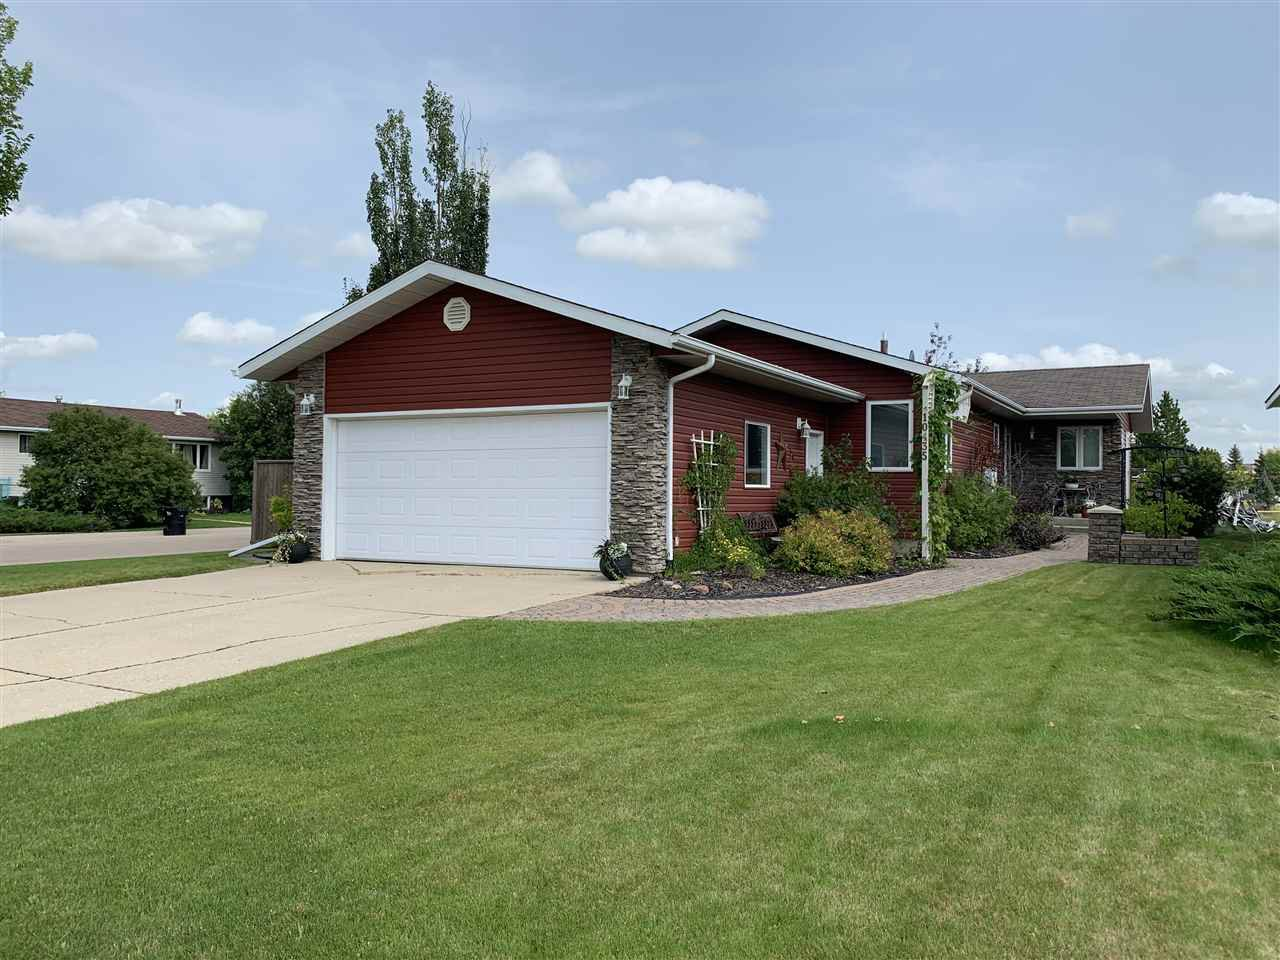 Main Photo: 10435 110 Avenue: Westlock House for sale : MLS®# E4167402